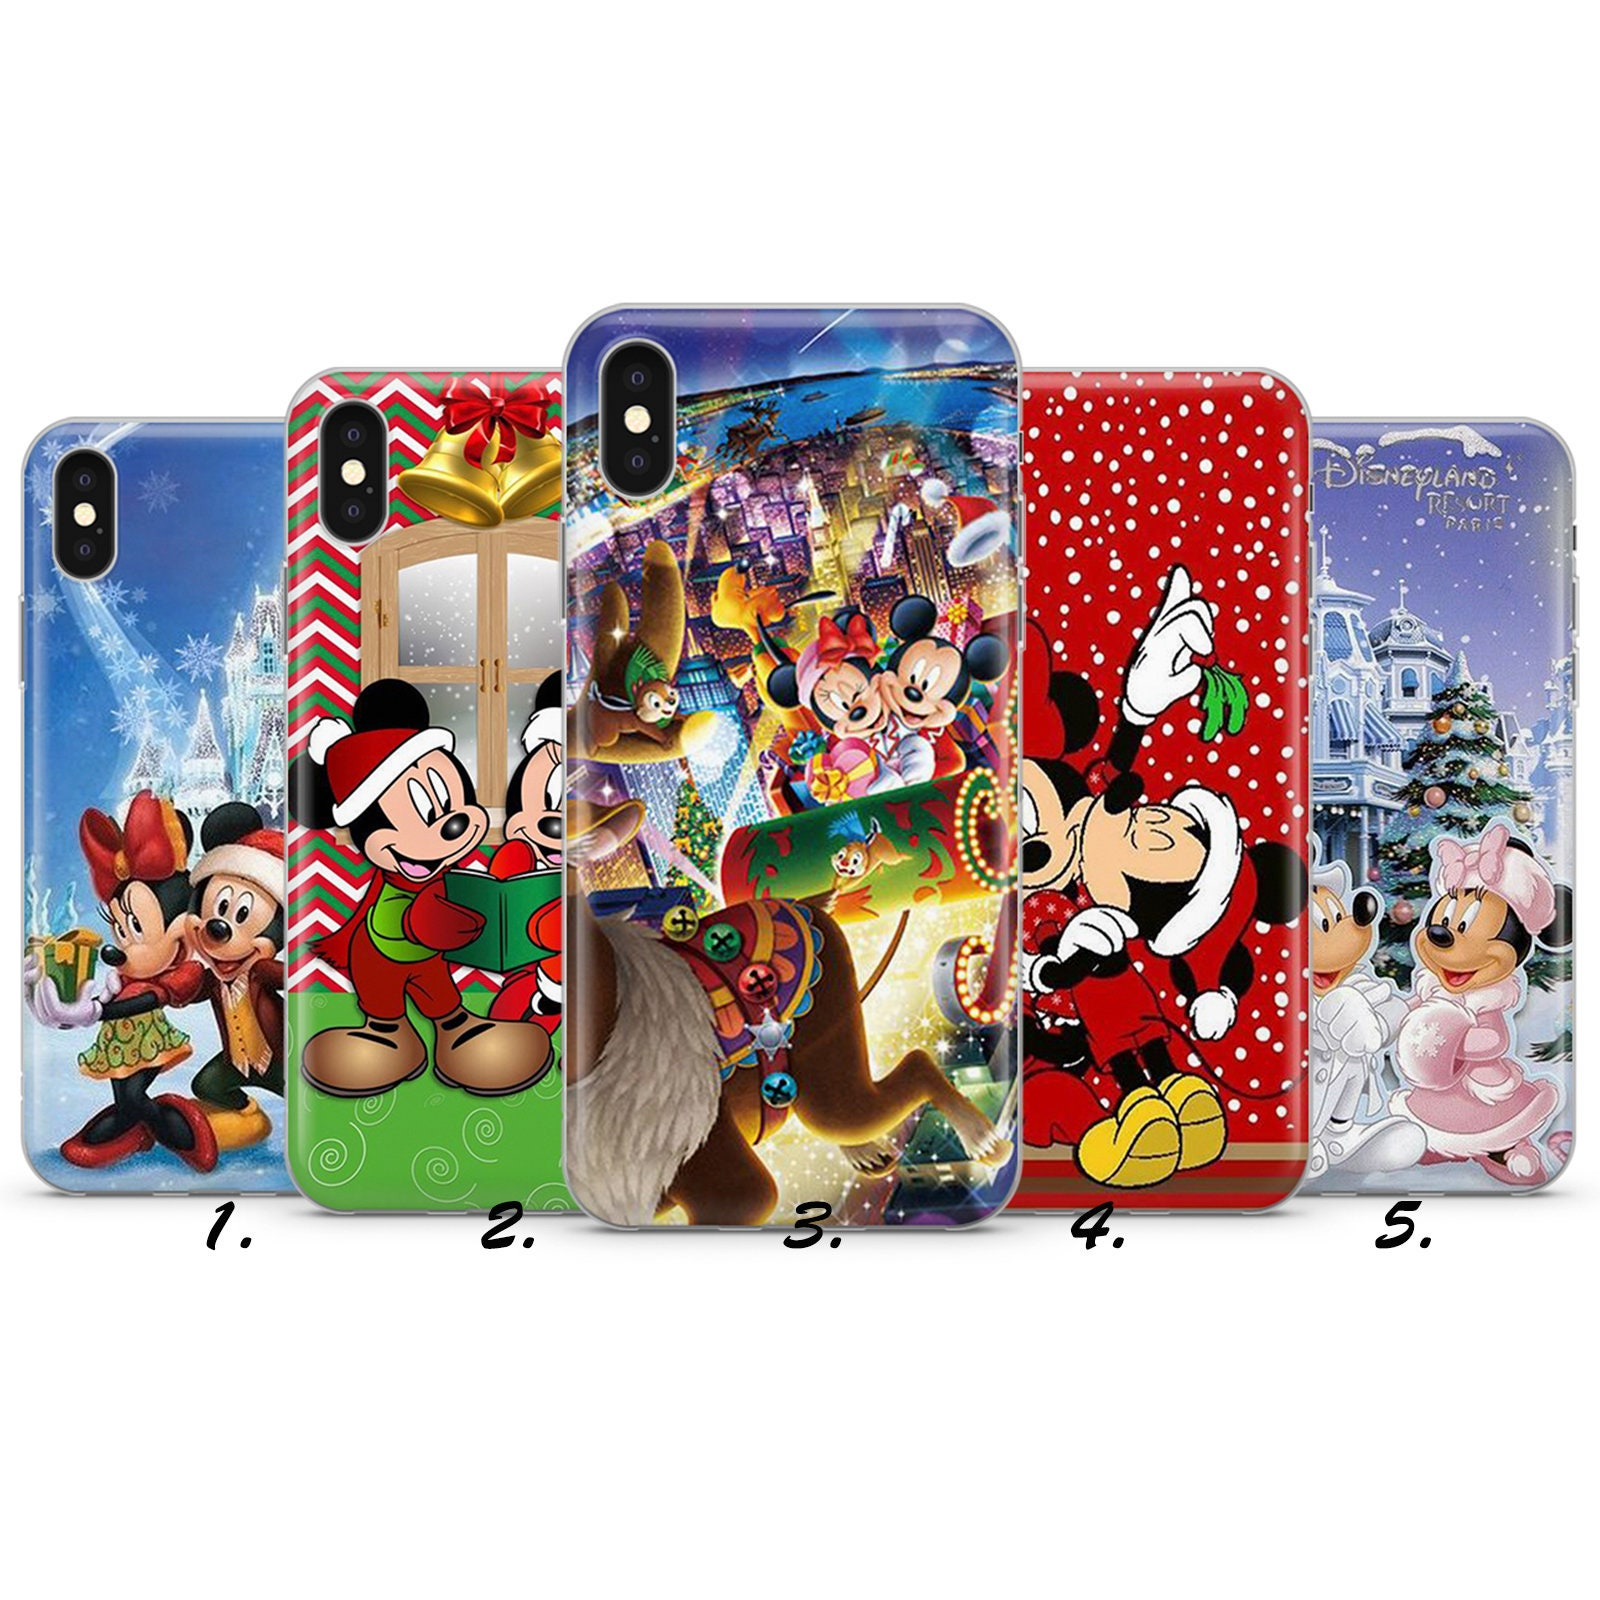 Disney Christmas Mickey Mouse Xmas Funny Quotes Cute Design Etsy